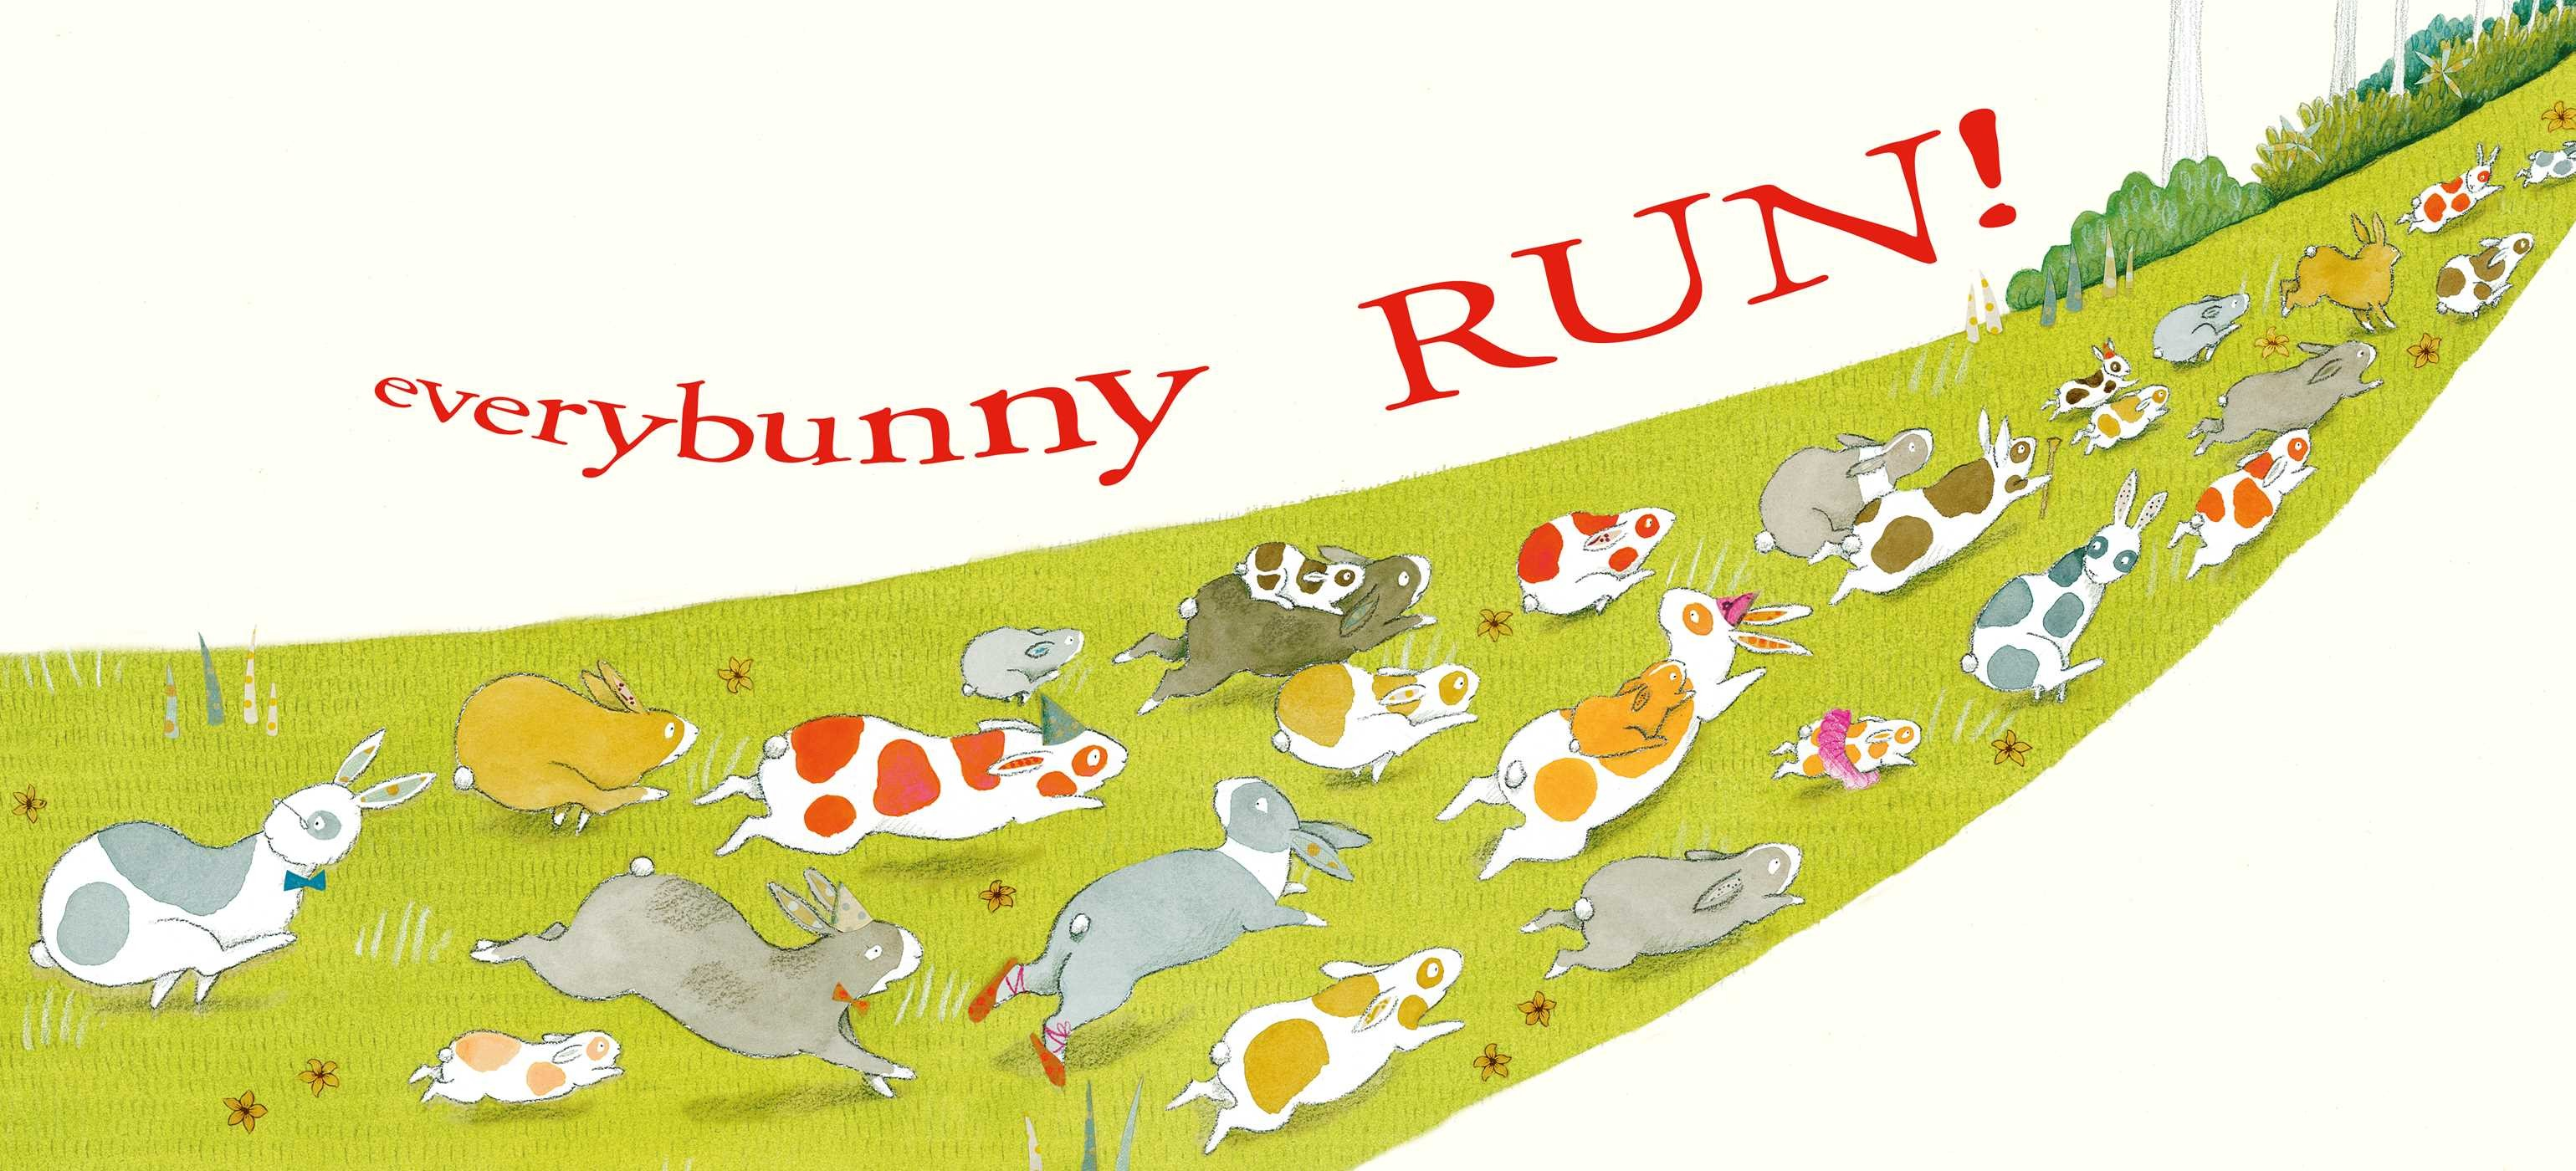 Everybunny dance 9781481498227.in06